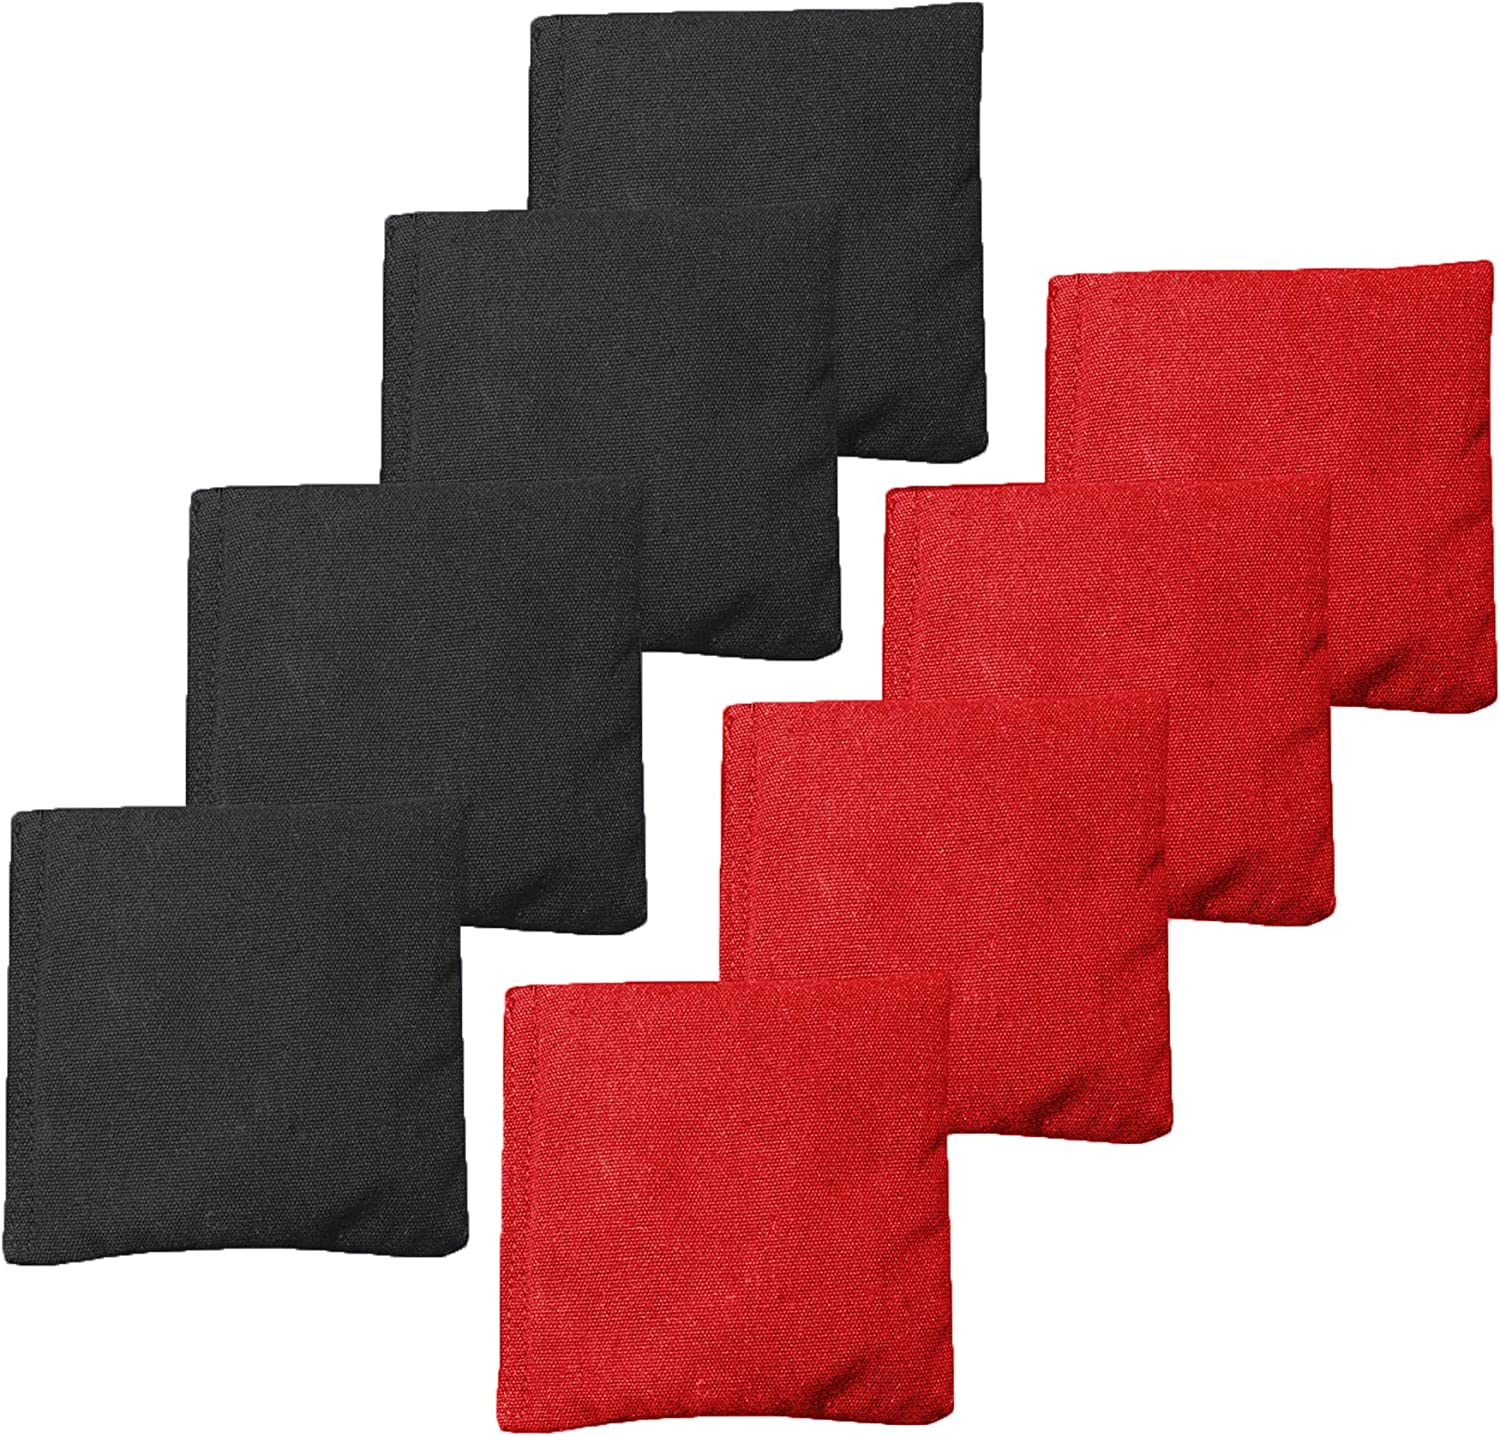 16 Colors Available Duck Cloth with All-Weather Corn Fill Renewed GoSports Cornhole Bean Bag Sets